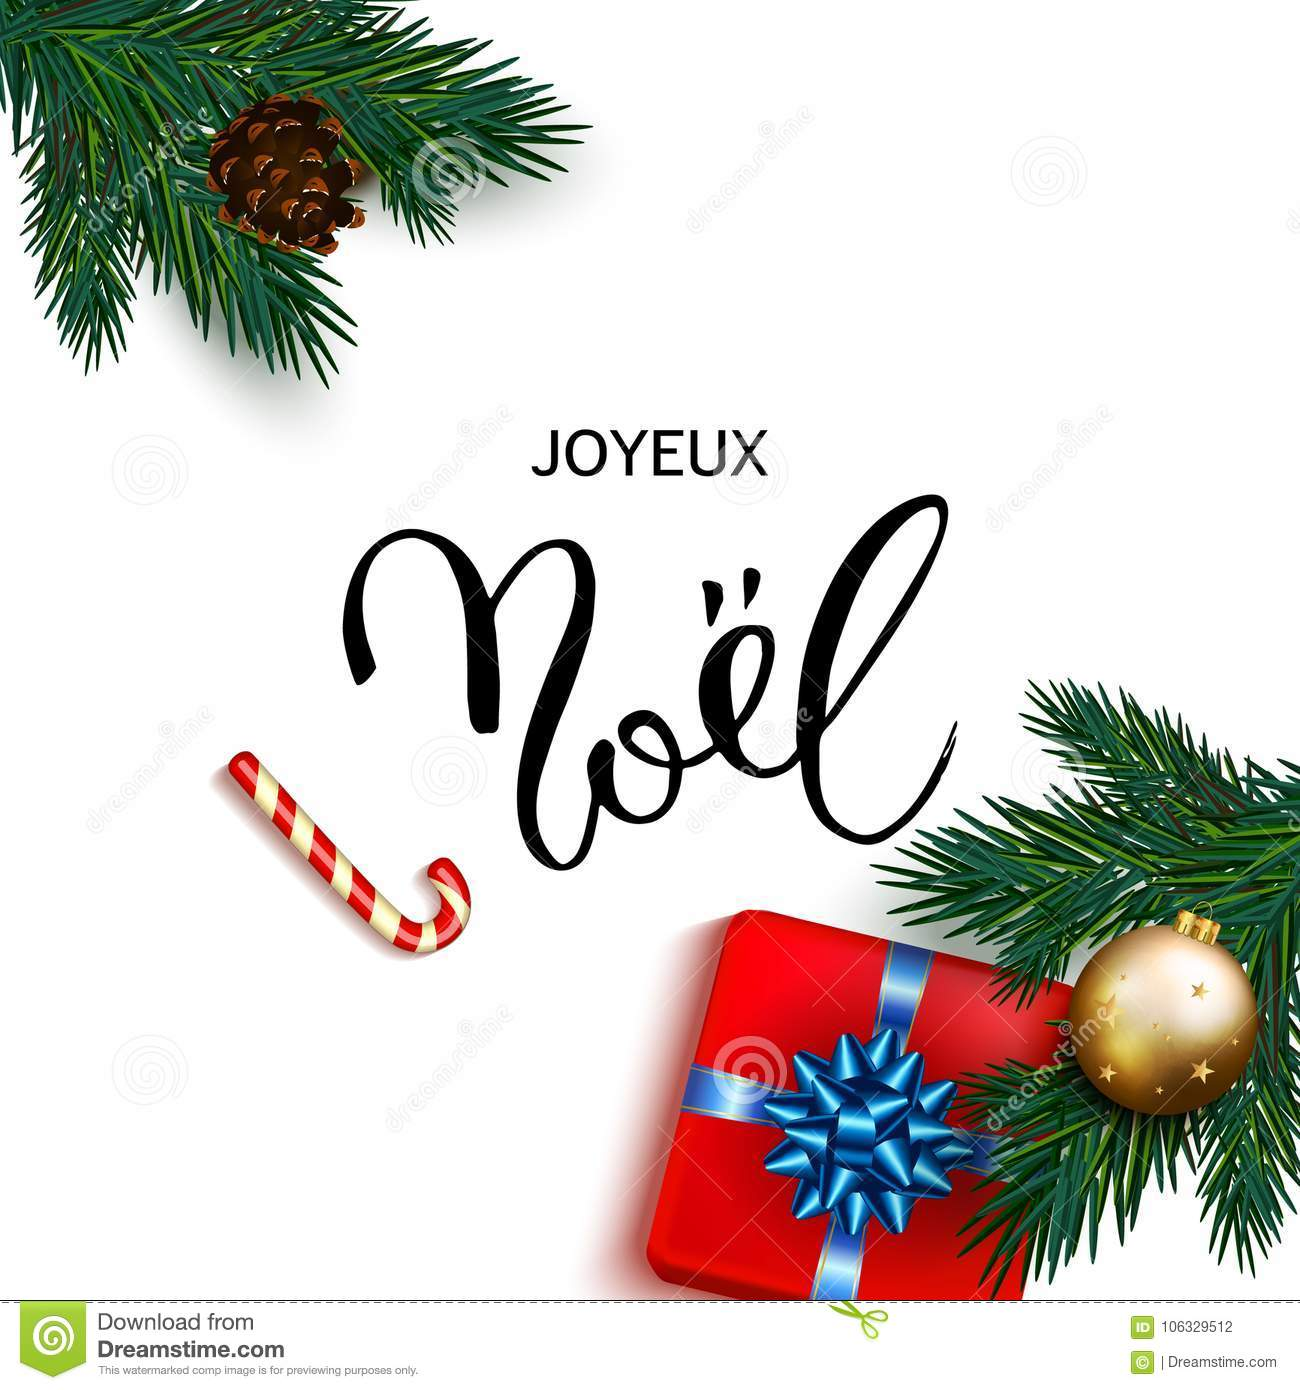 French Merry Christmas Joyeux Noel Greeting Card With Box Gifts ...